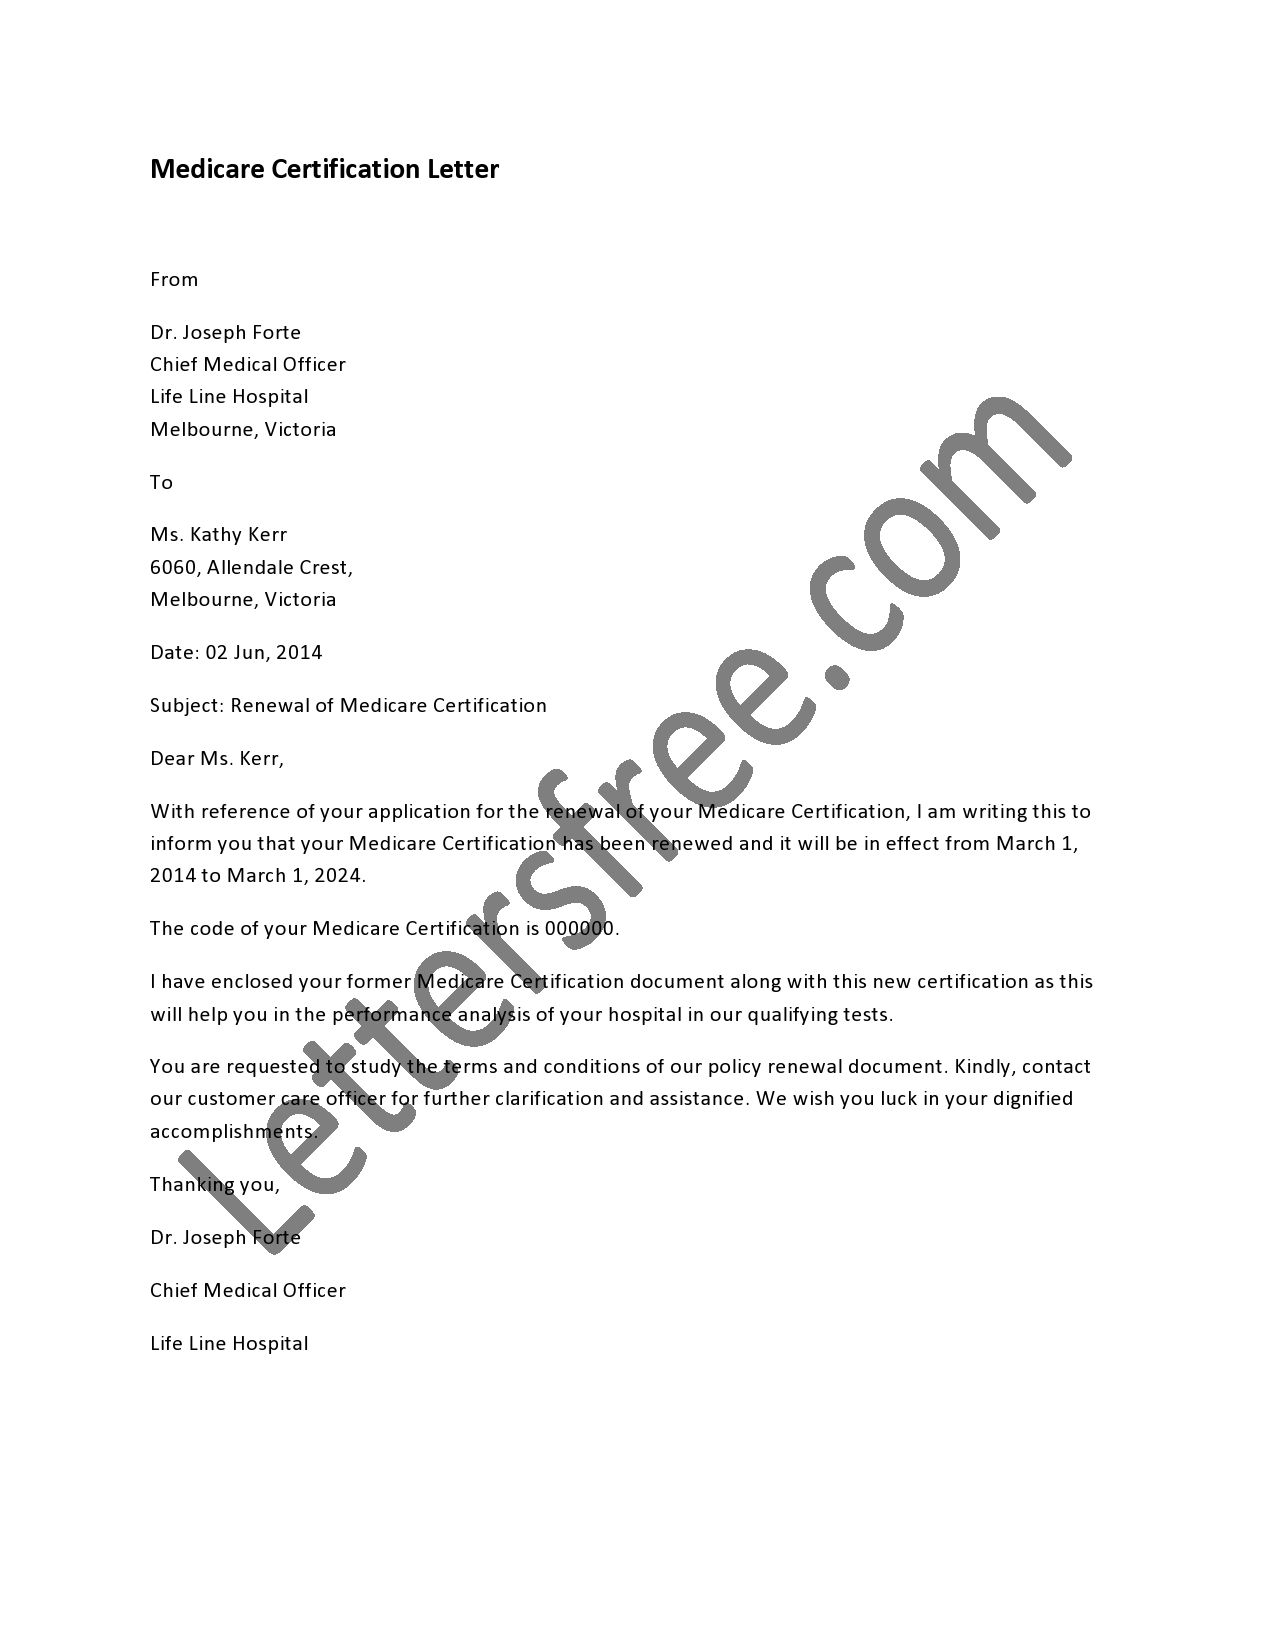 examples of medicare certification letter in a well drafted and examples of medicare certification letter in a well drafted and organized format use these